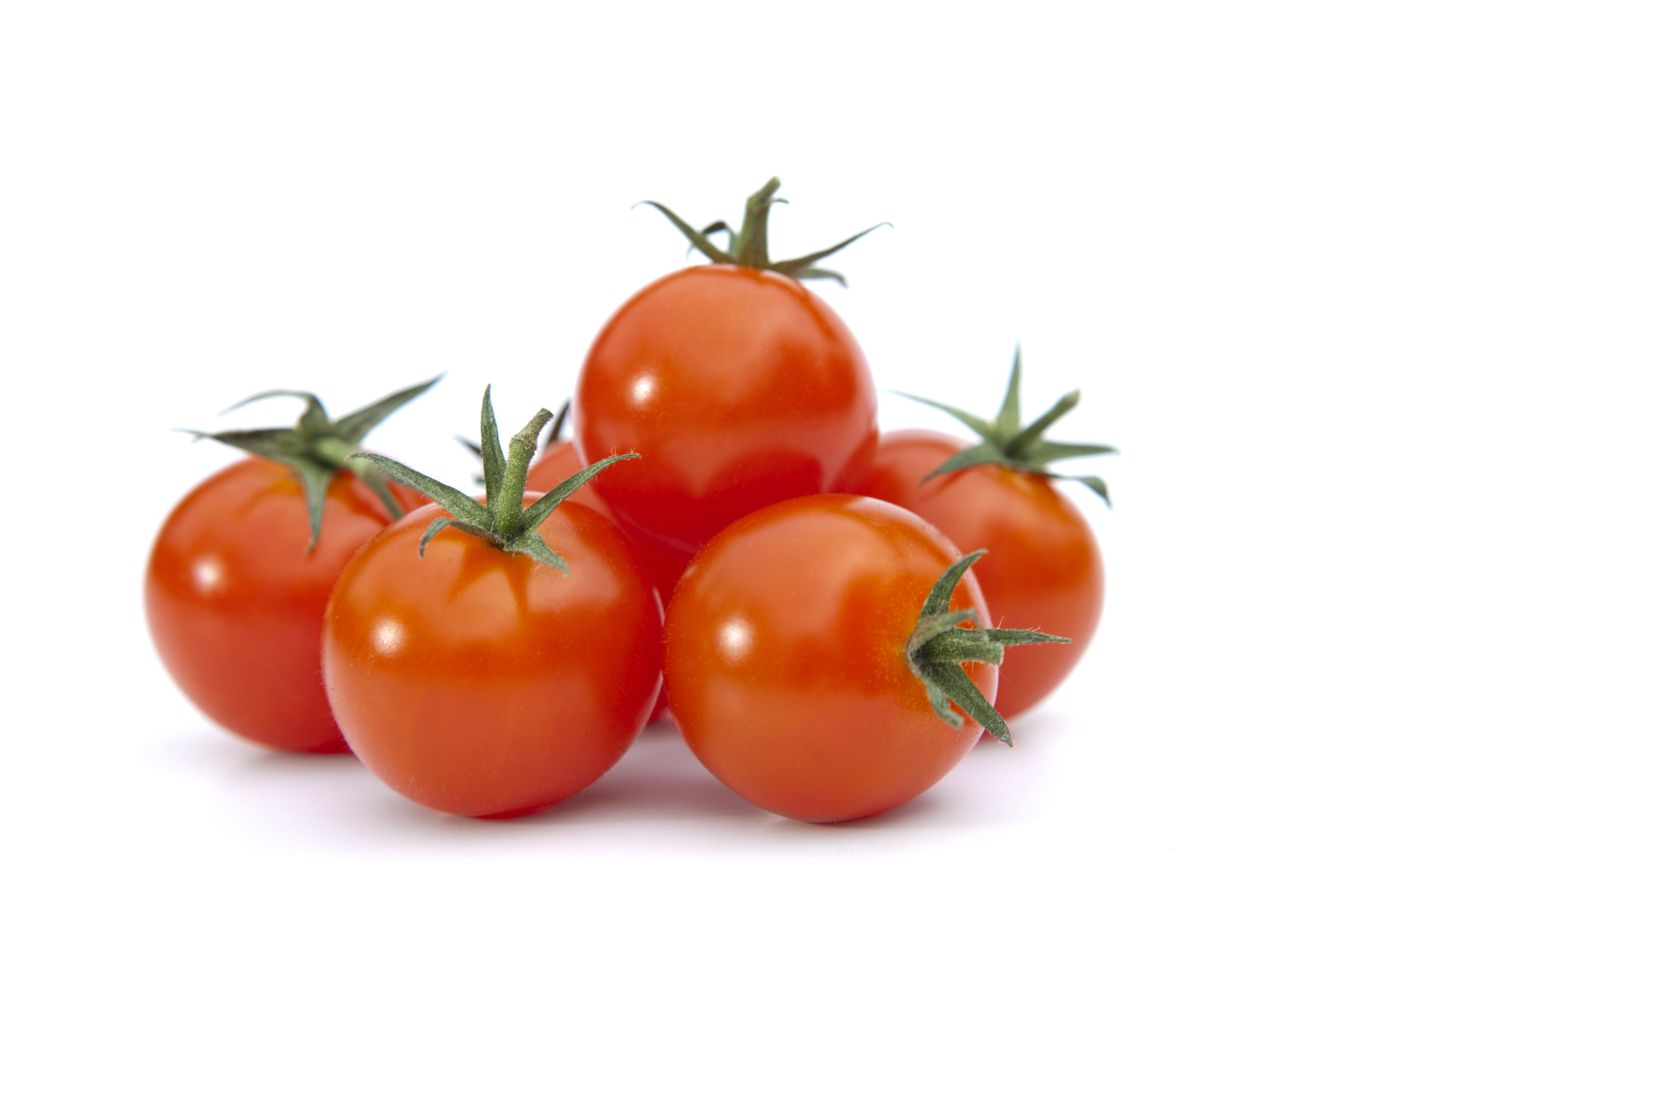 Tomatoes are acidic, especially when paired with goat cheese and balsamic vinegar.